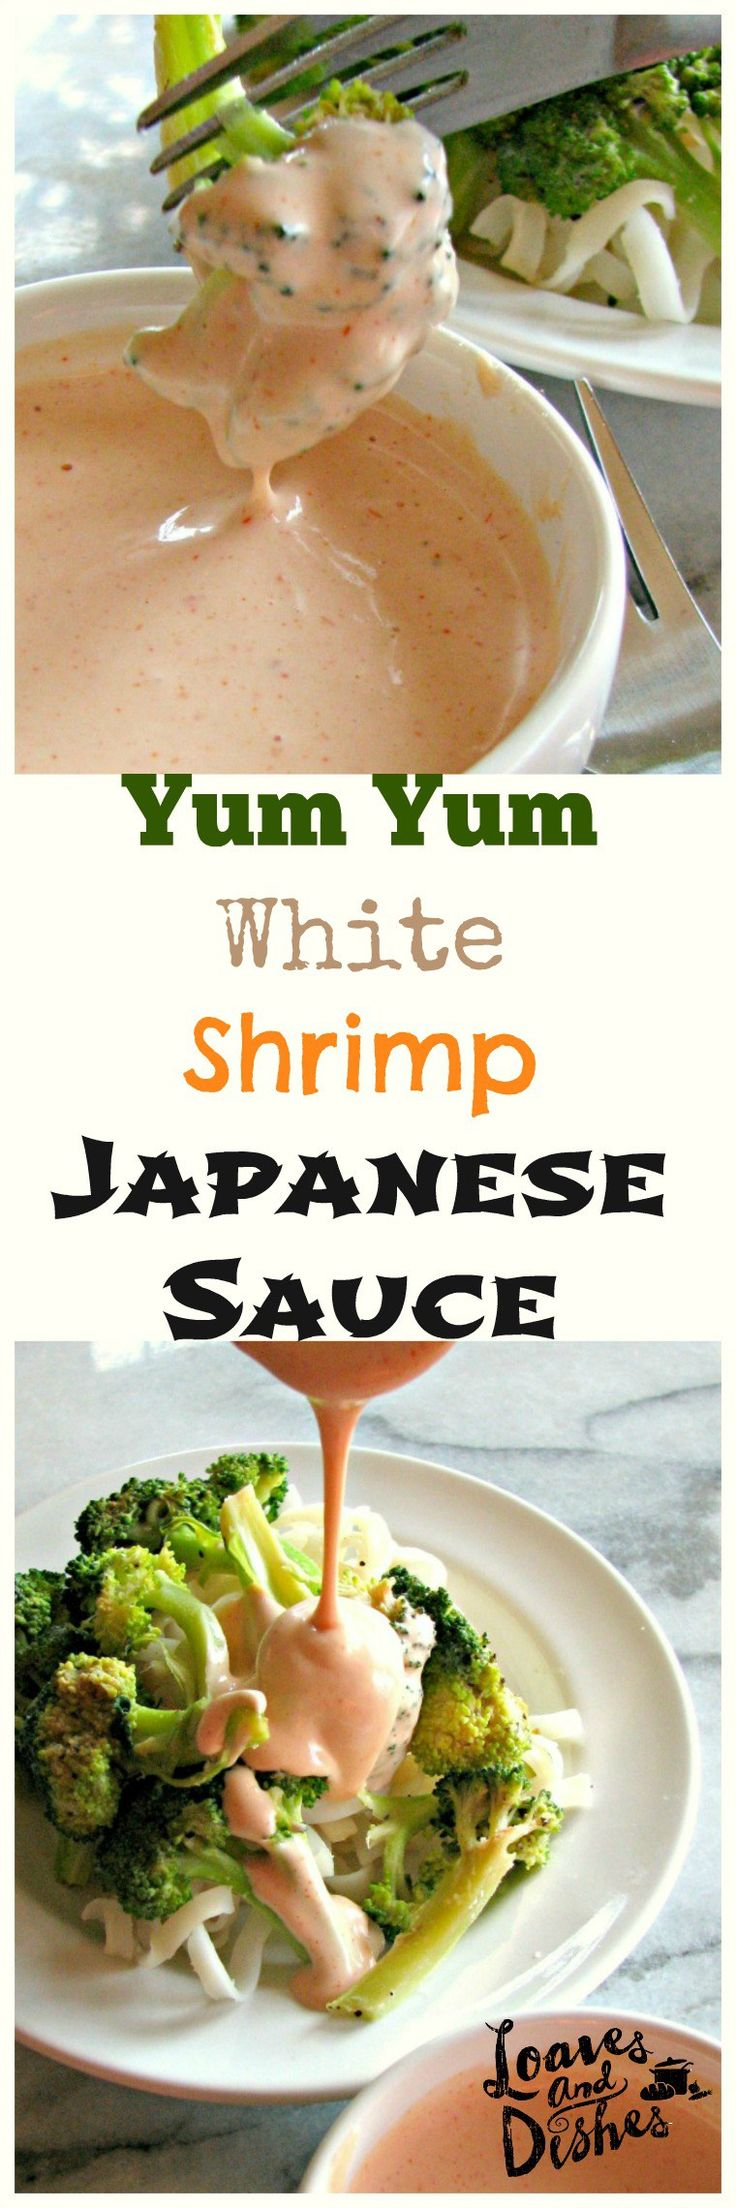 Yum Yum, White, Shrimp or Japanese Steak House Sauce - Steak House.